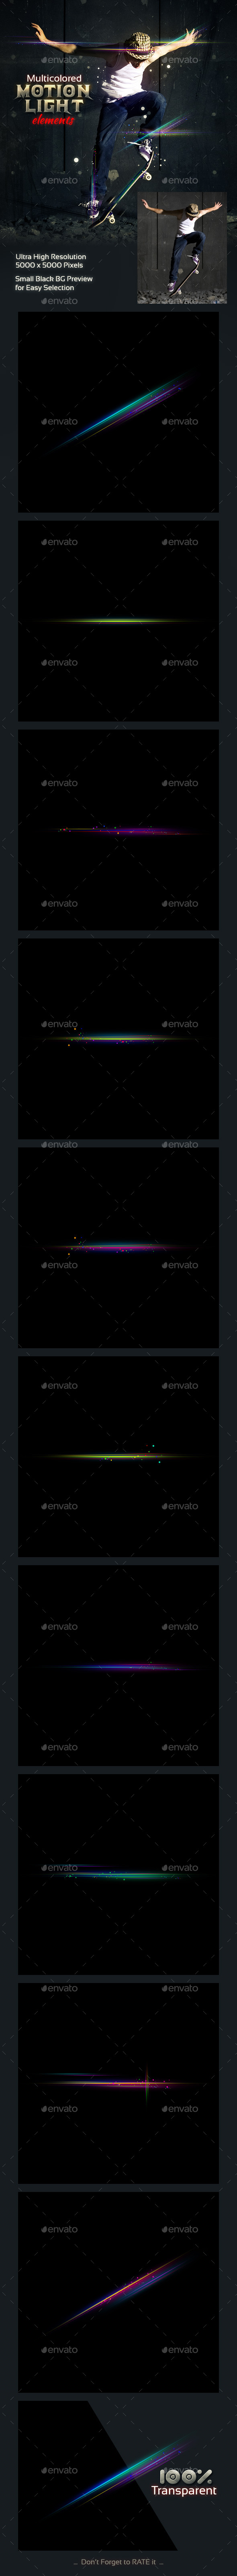 GraphicRiver Motion Light Elements 9093942